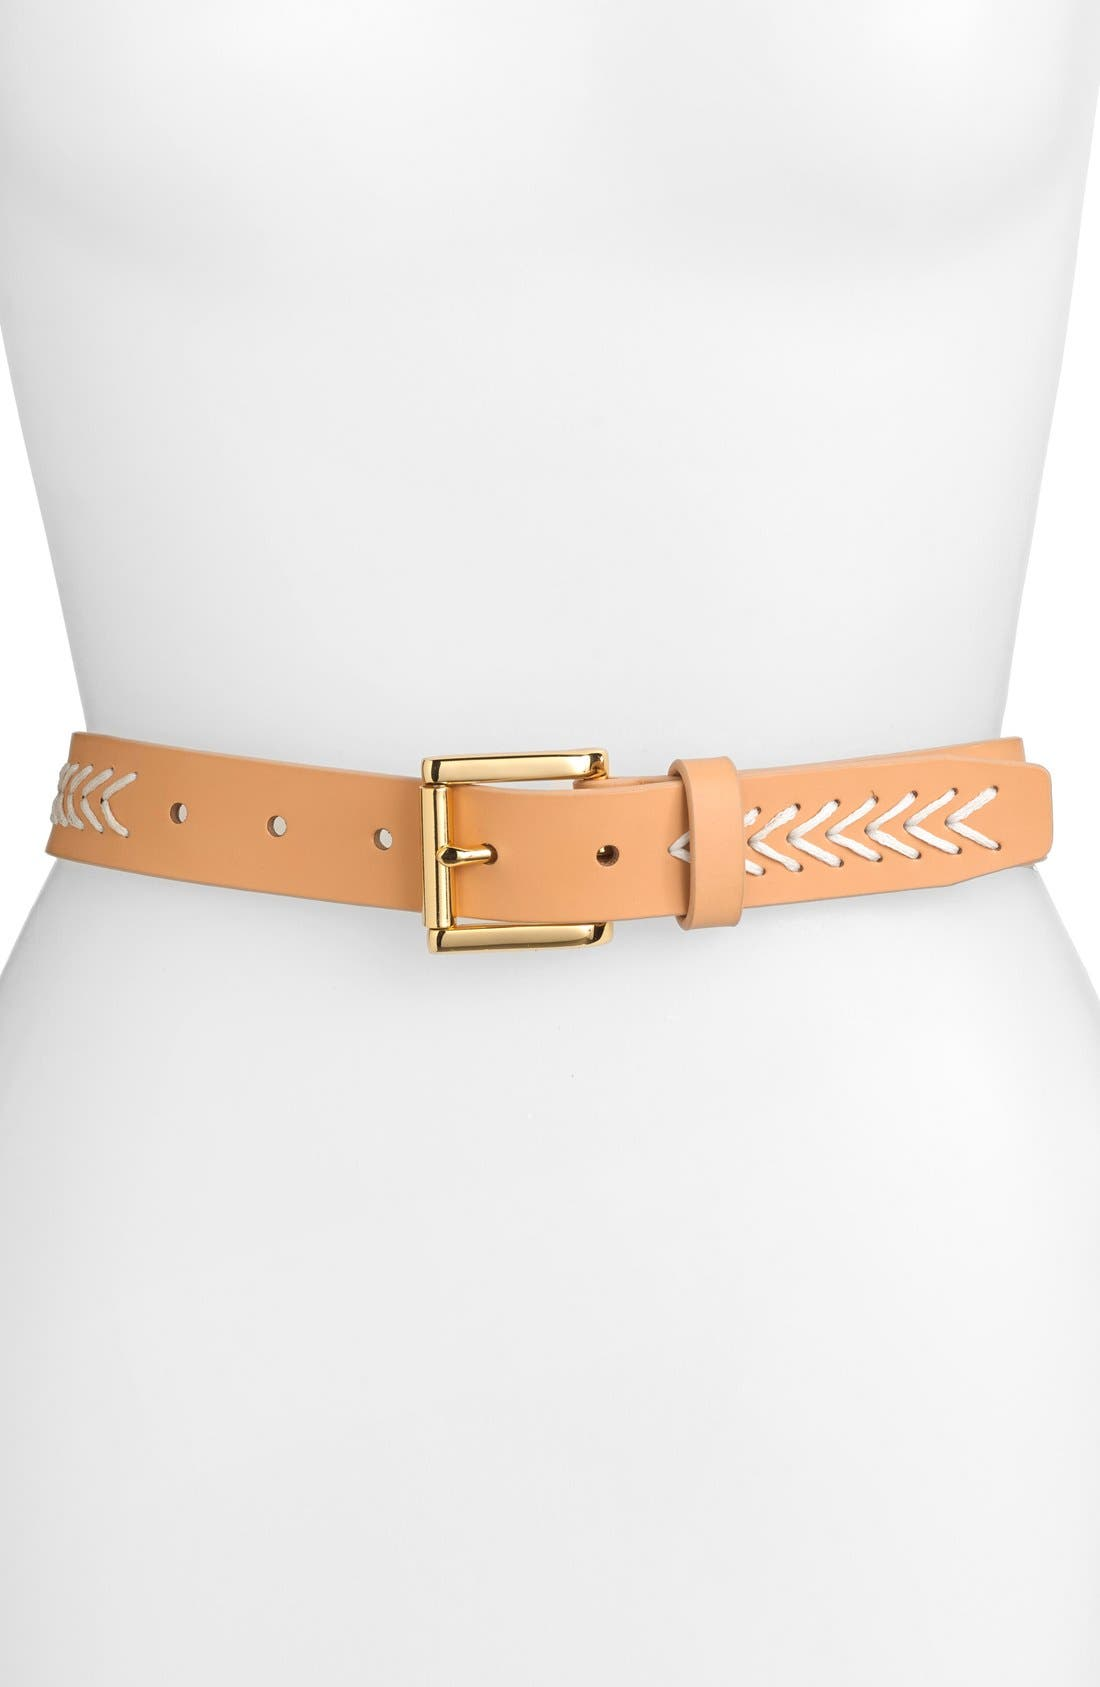 Alternate Image 1 Selected - Vince Camuto Waxed Cord & Leather Belt